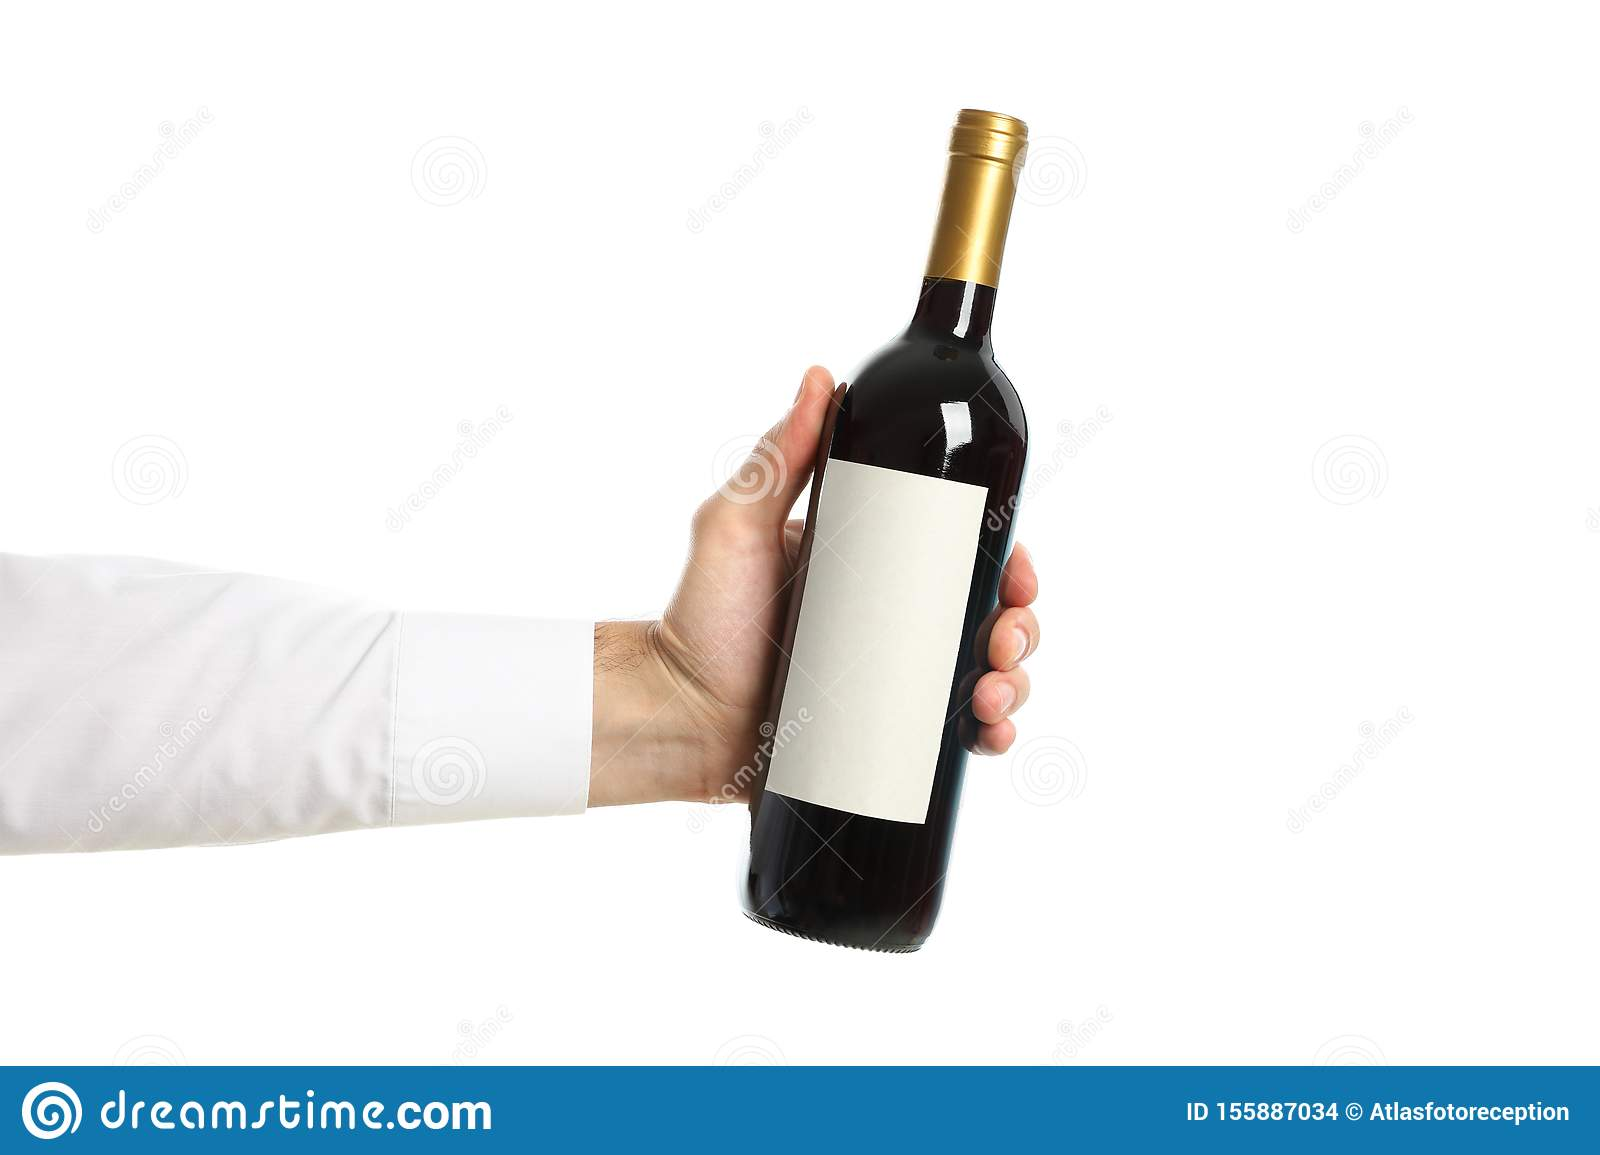 Get your man a bottle of red wine